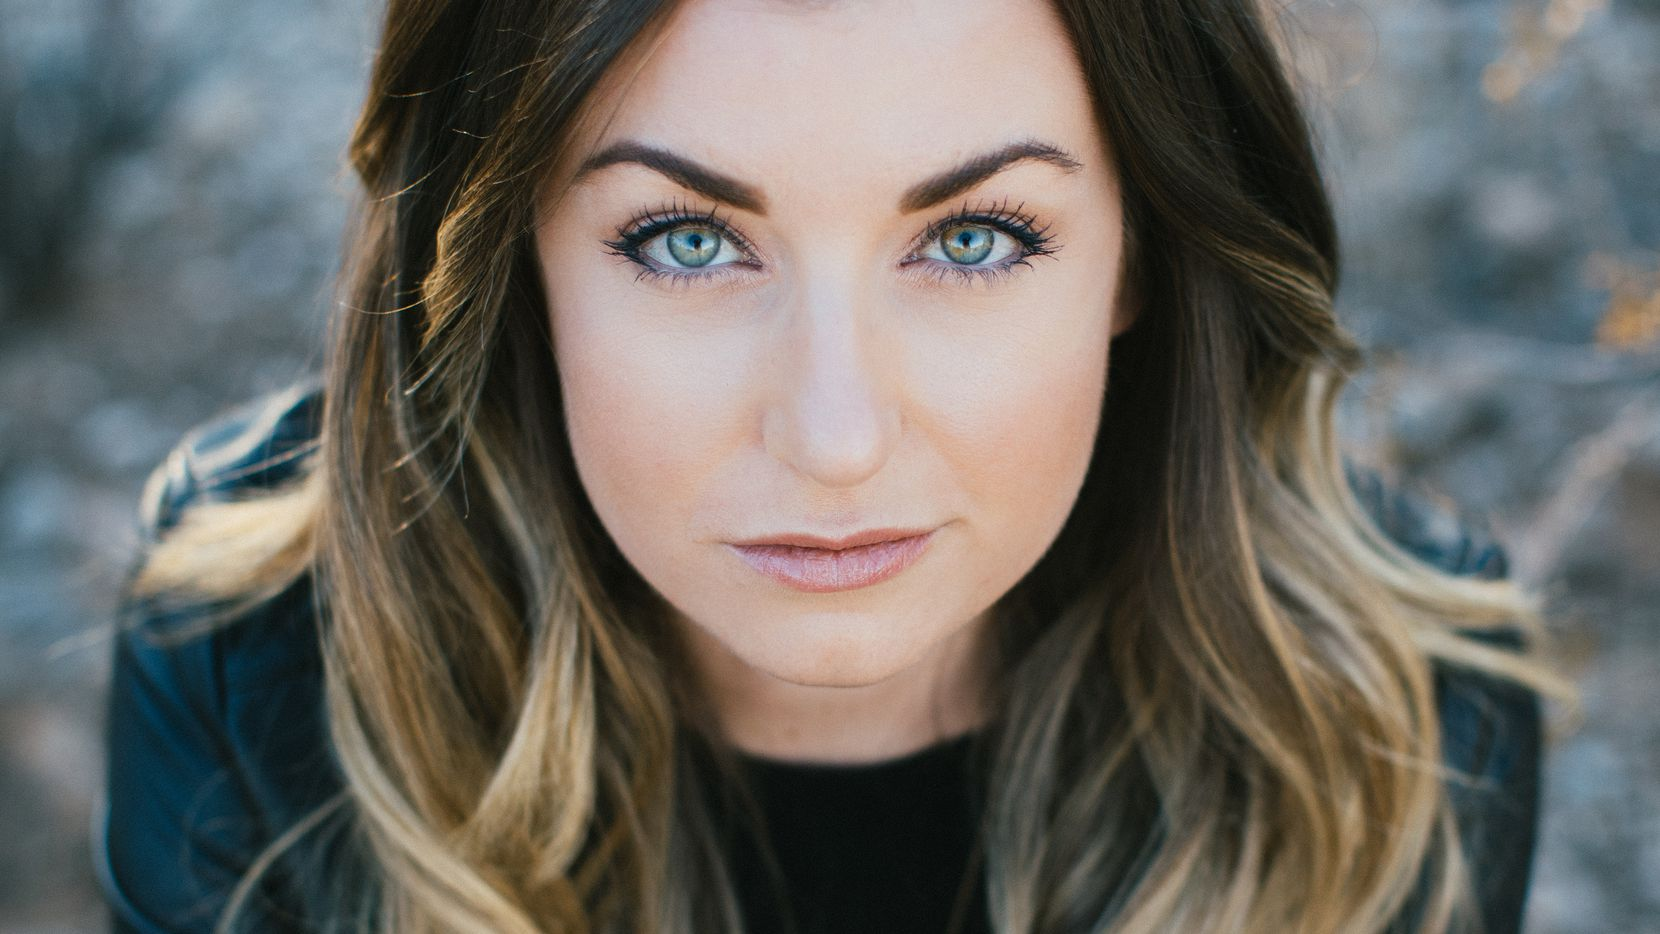 """T.J. Newman was furloughed from her job as a flight attendant in March 2020, as the pandemic took hold. Now, she's a bestselling author with a movie deal for her debut novel, """"Falling."""""""